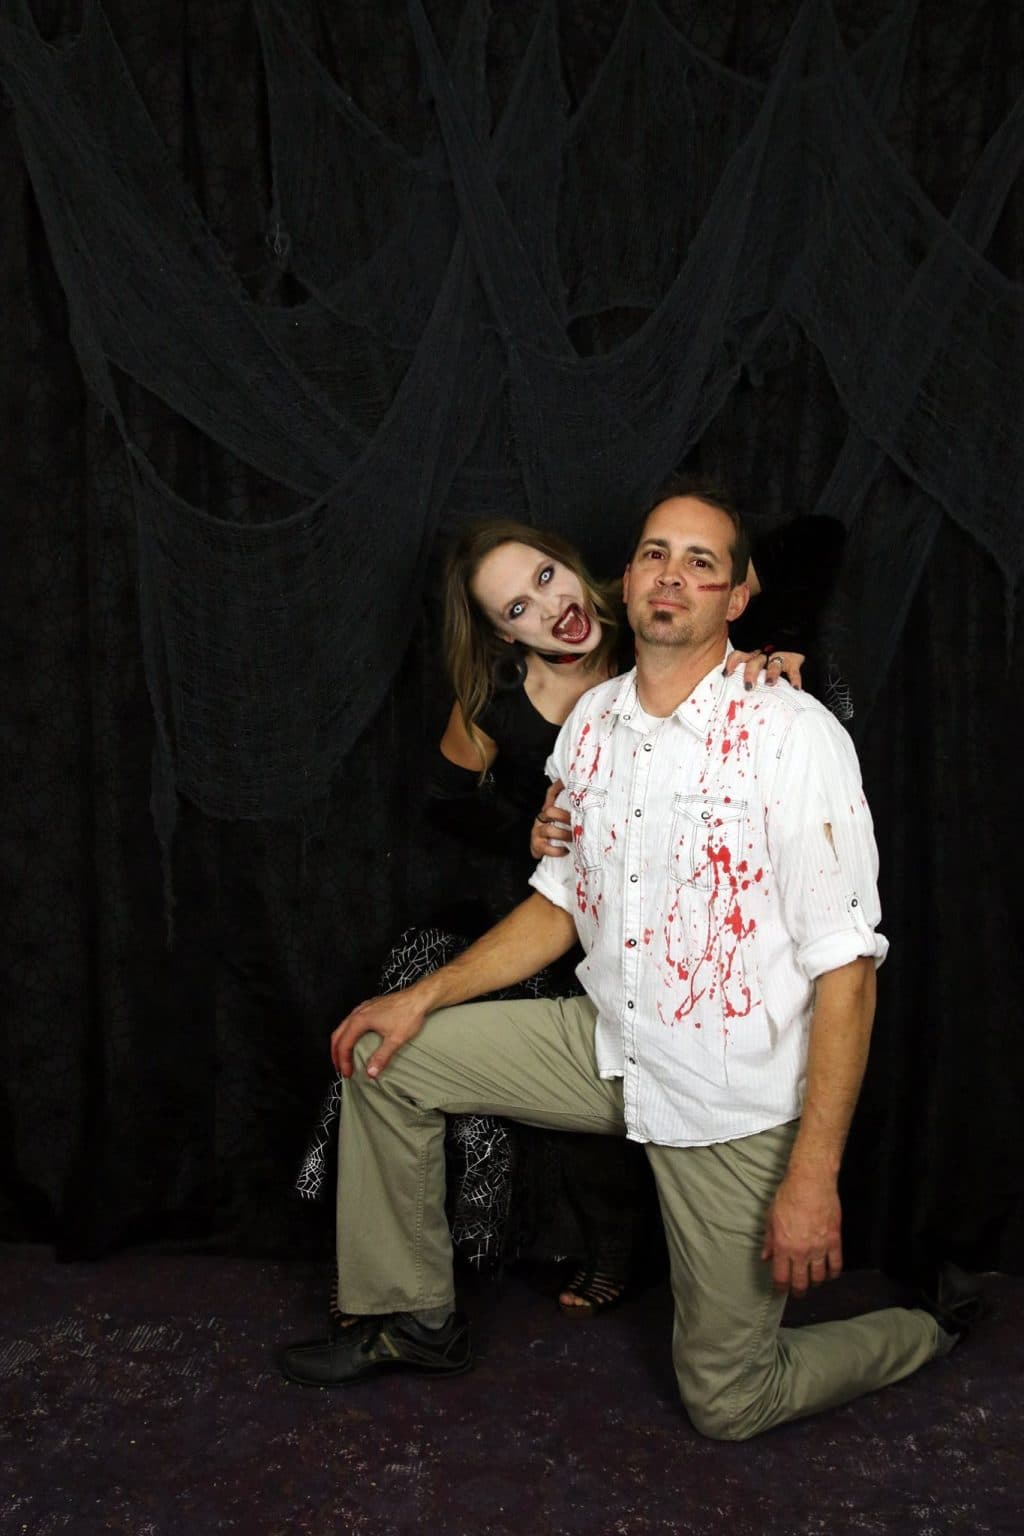 A vampire and her victim costume!